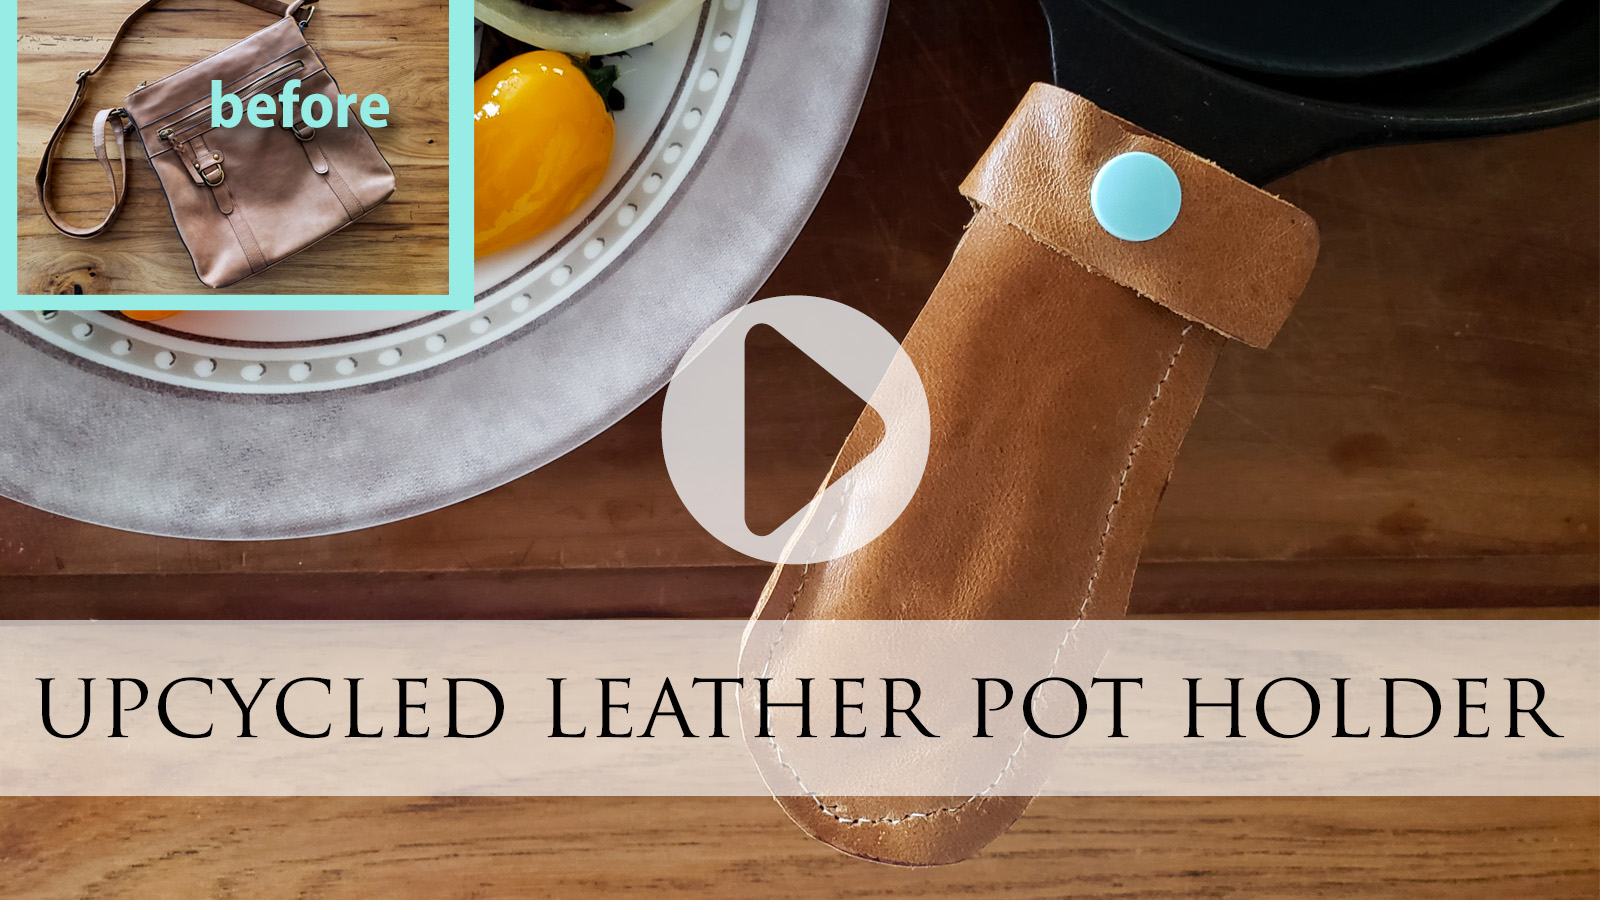 Upcycled Leather Pot Holder from Purse by Prodigal Pieces   prodigalpieces.com